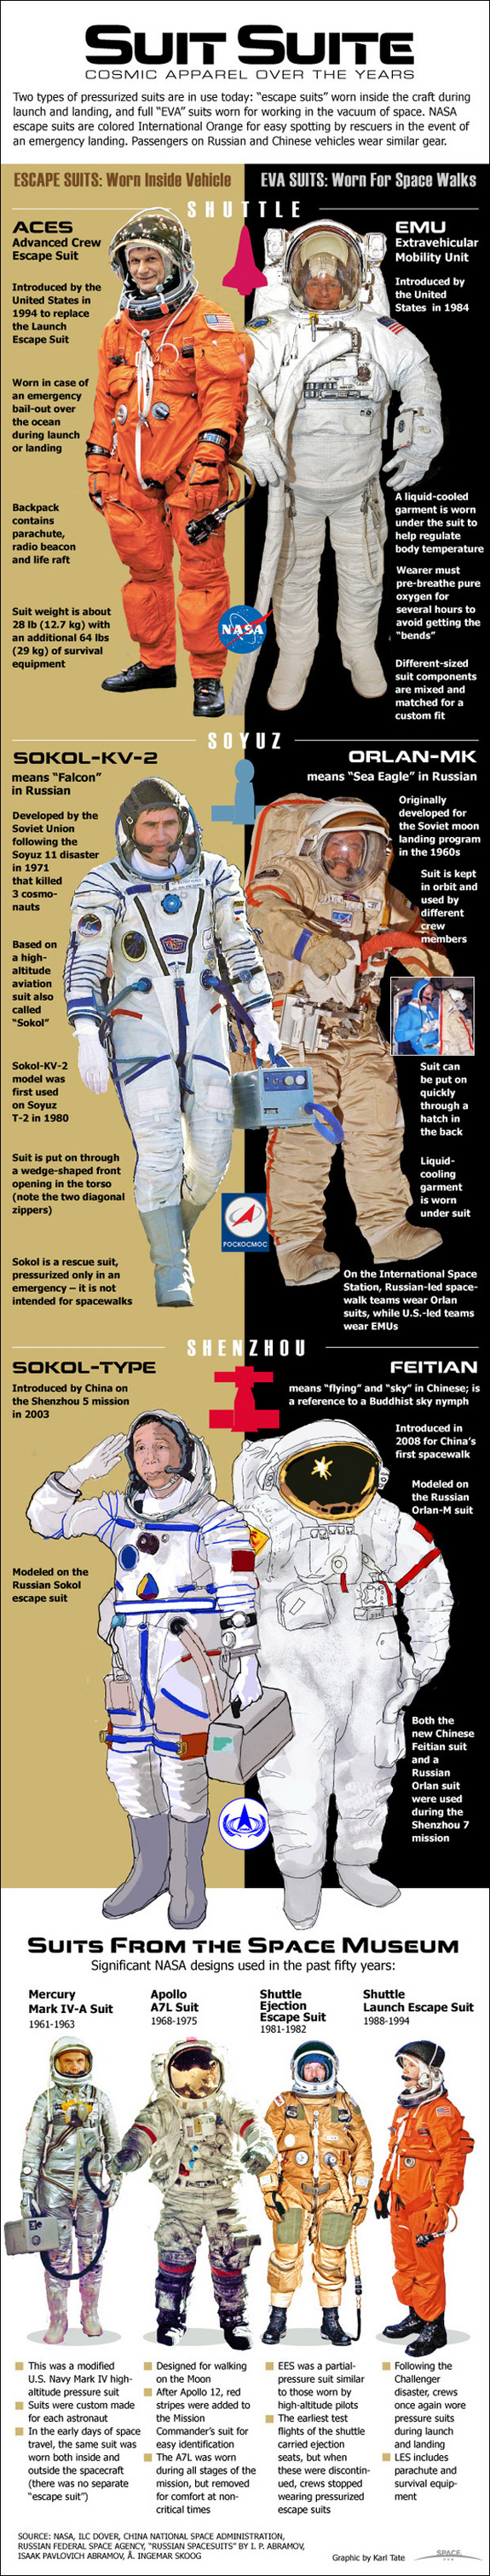 """NASA's spacesuits have come a long way since the dawn of human spaceflight. <a href=""""http://www.space.com/71-suit-suite-cosmic-apparel-over-the-years.html"""">See how U.S. spacesuit tech has evolved in this Space.com infographic</a>."""